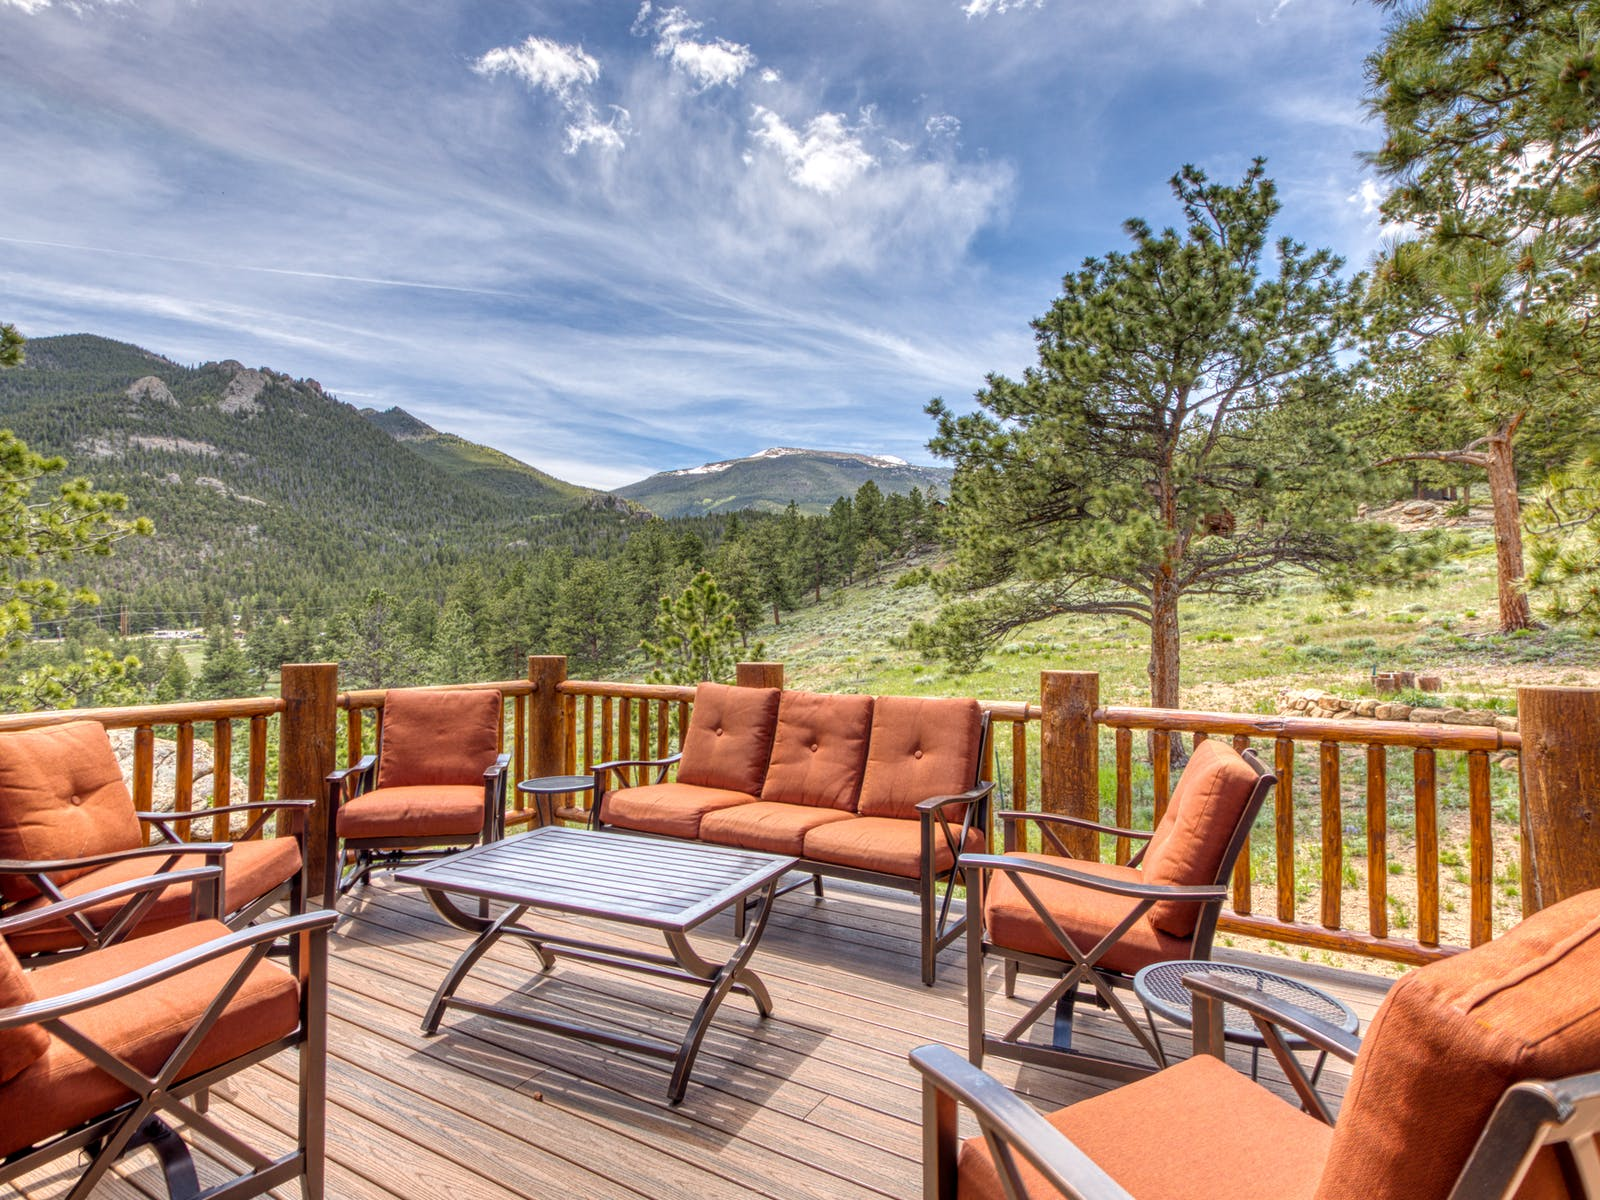 Vacation rental deck in Estes Park, CO with views of the mountains